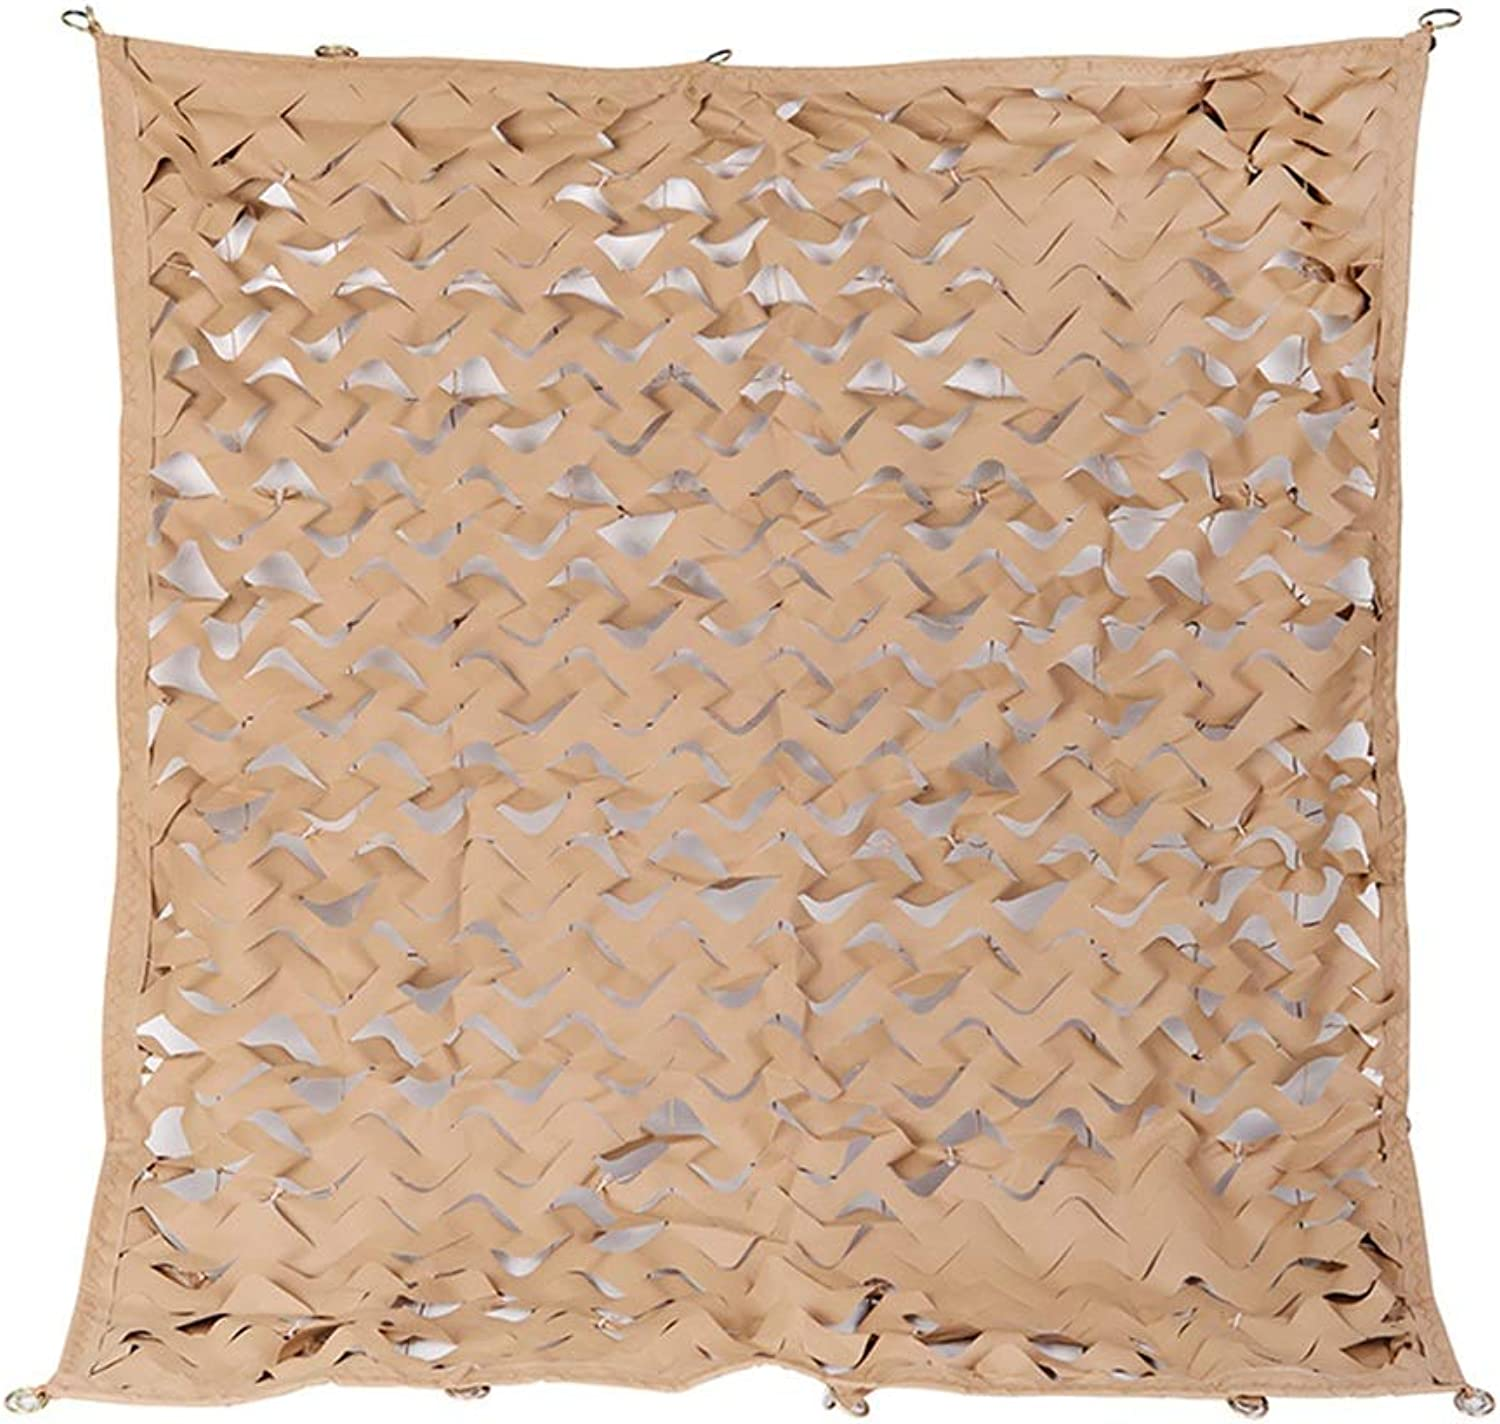 HAIPENG Camouflage Netting Camo Net Sunscreen Sunshade Tent Hunting Shooting Hide Army Camping Desert Decorations Outdoor (color   Beige, Size   2x8m)